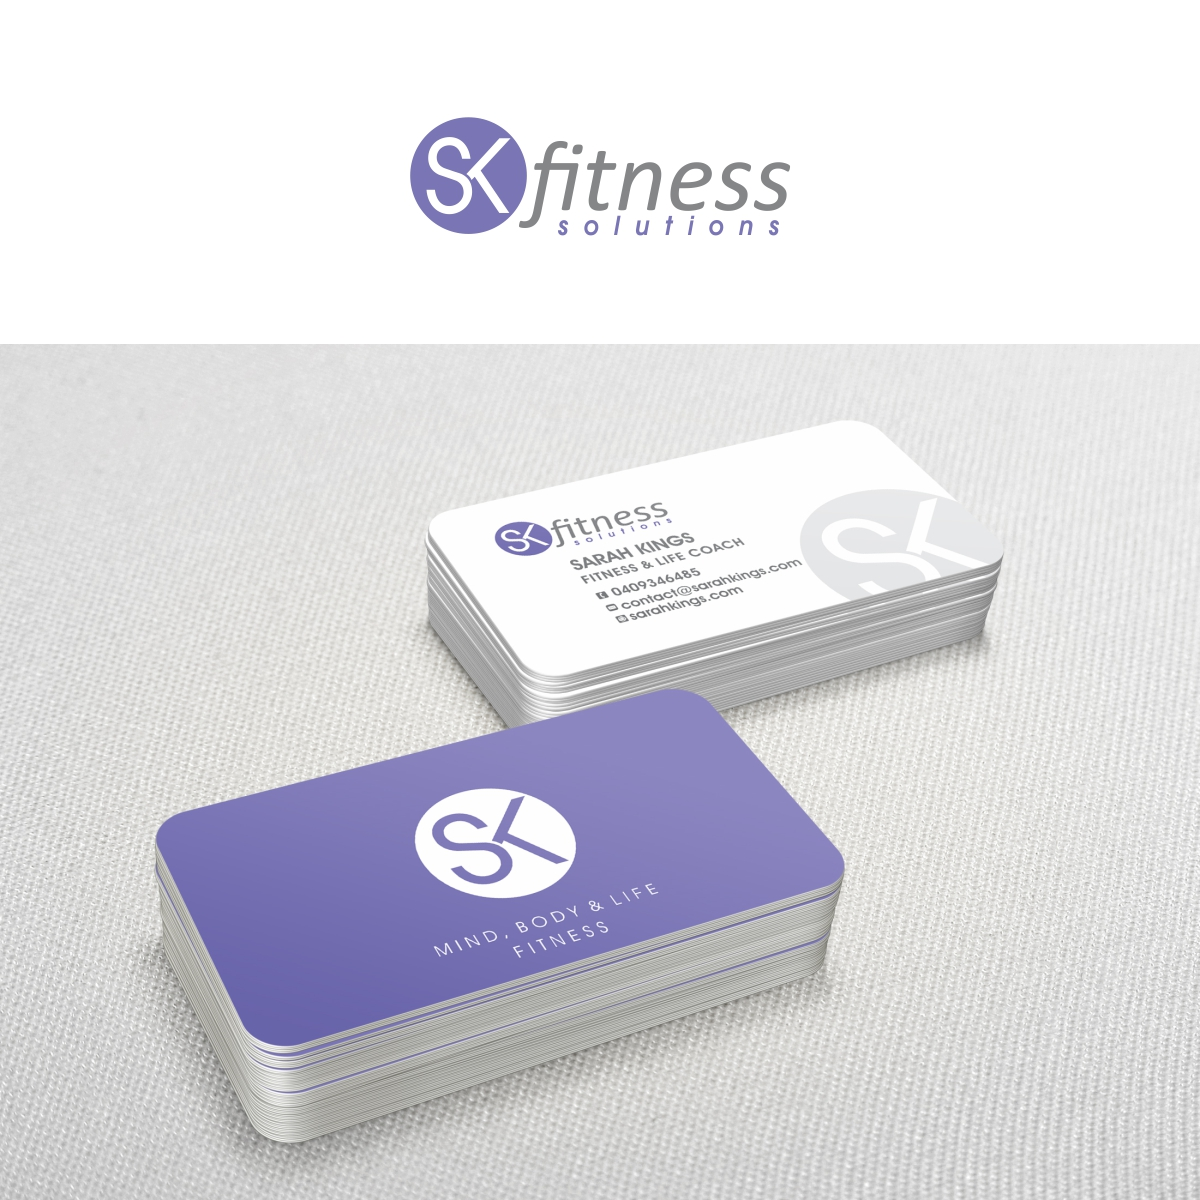 Business card design for sarah kings by nologo design for Health coach business card ideas